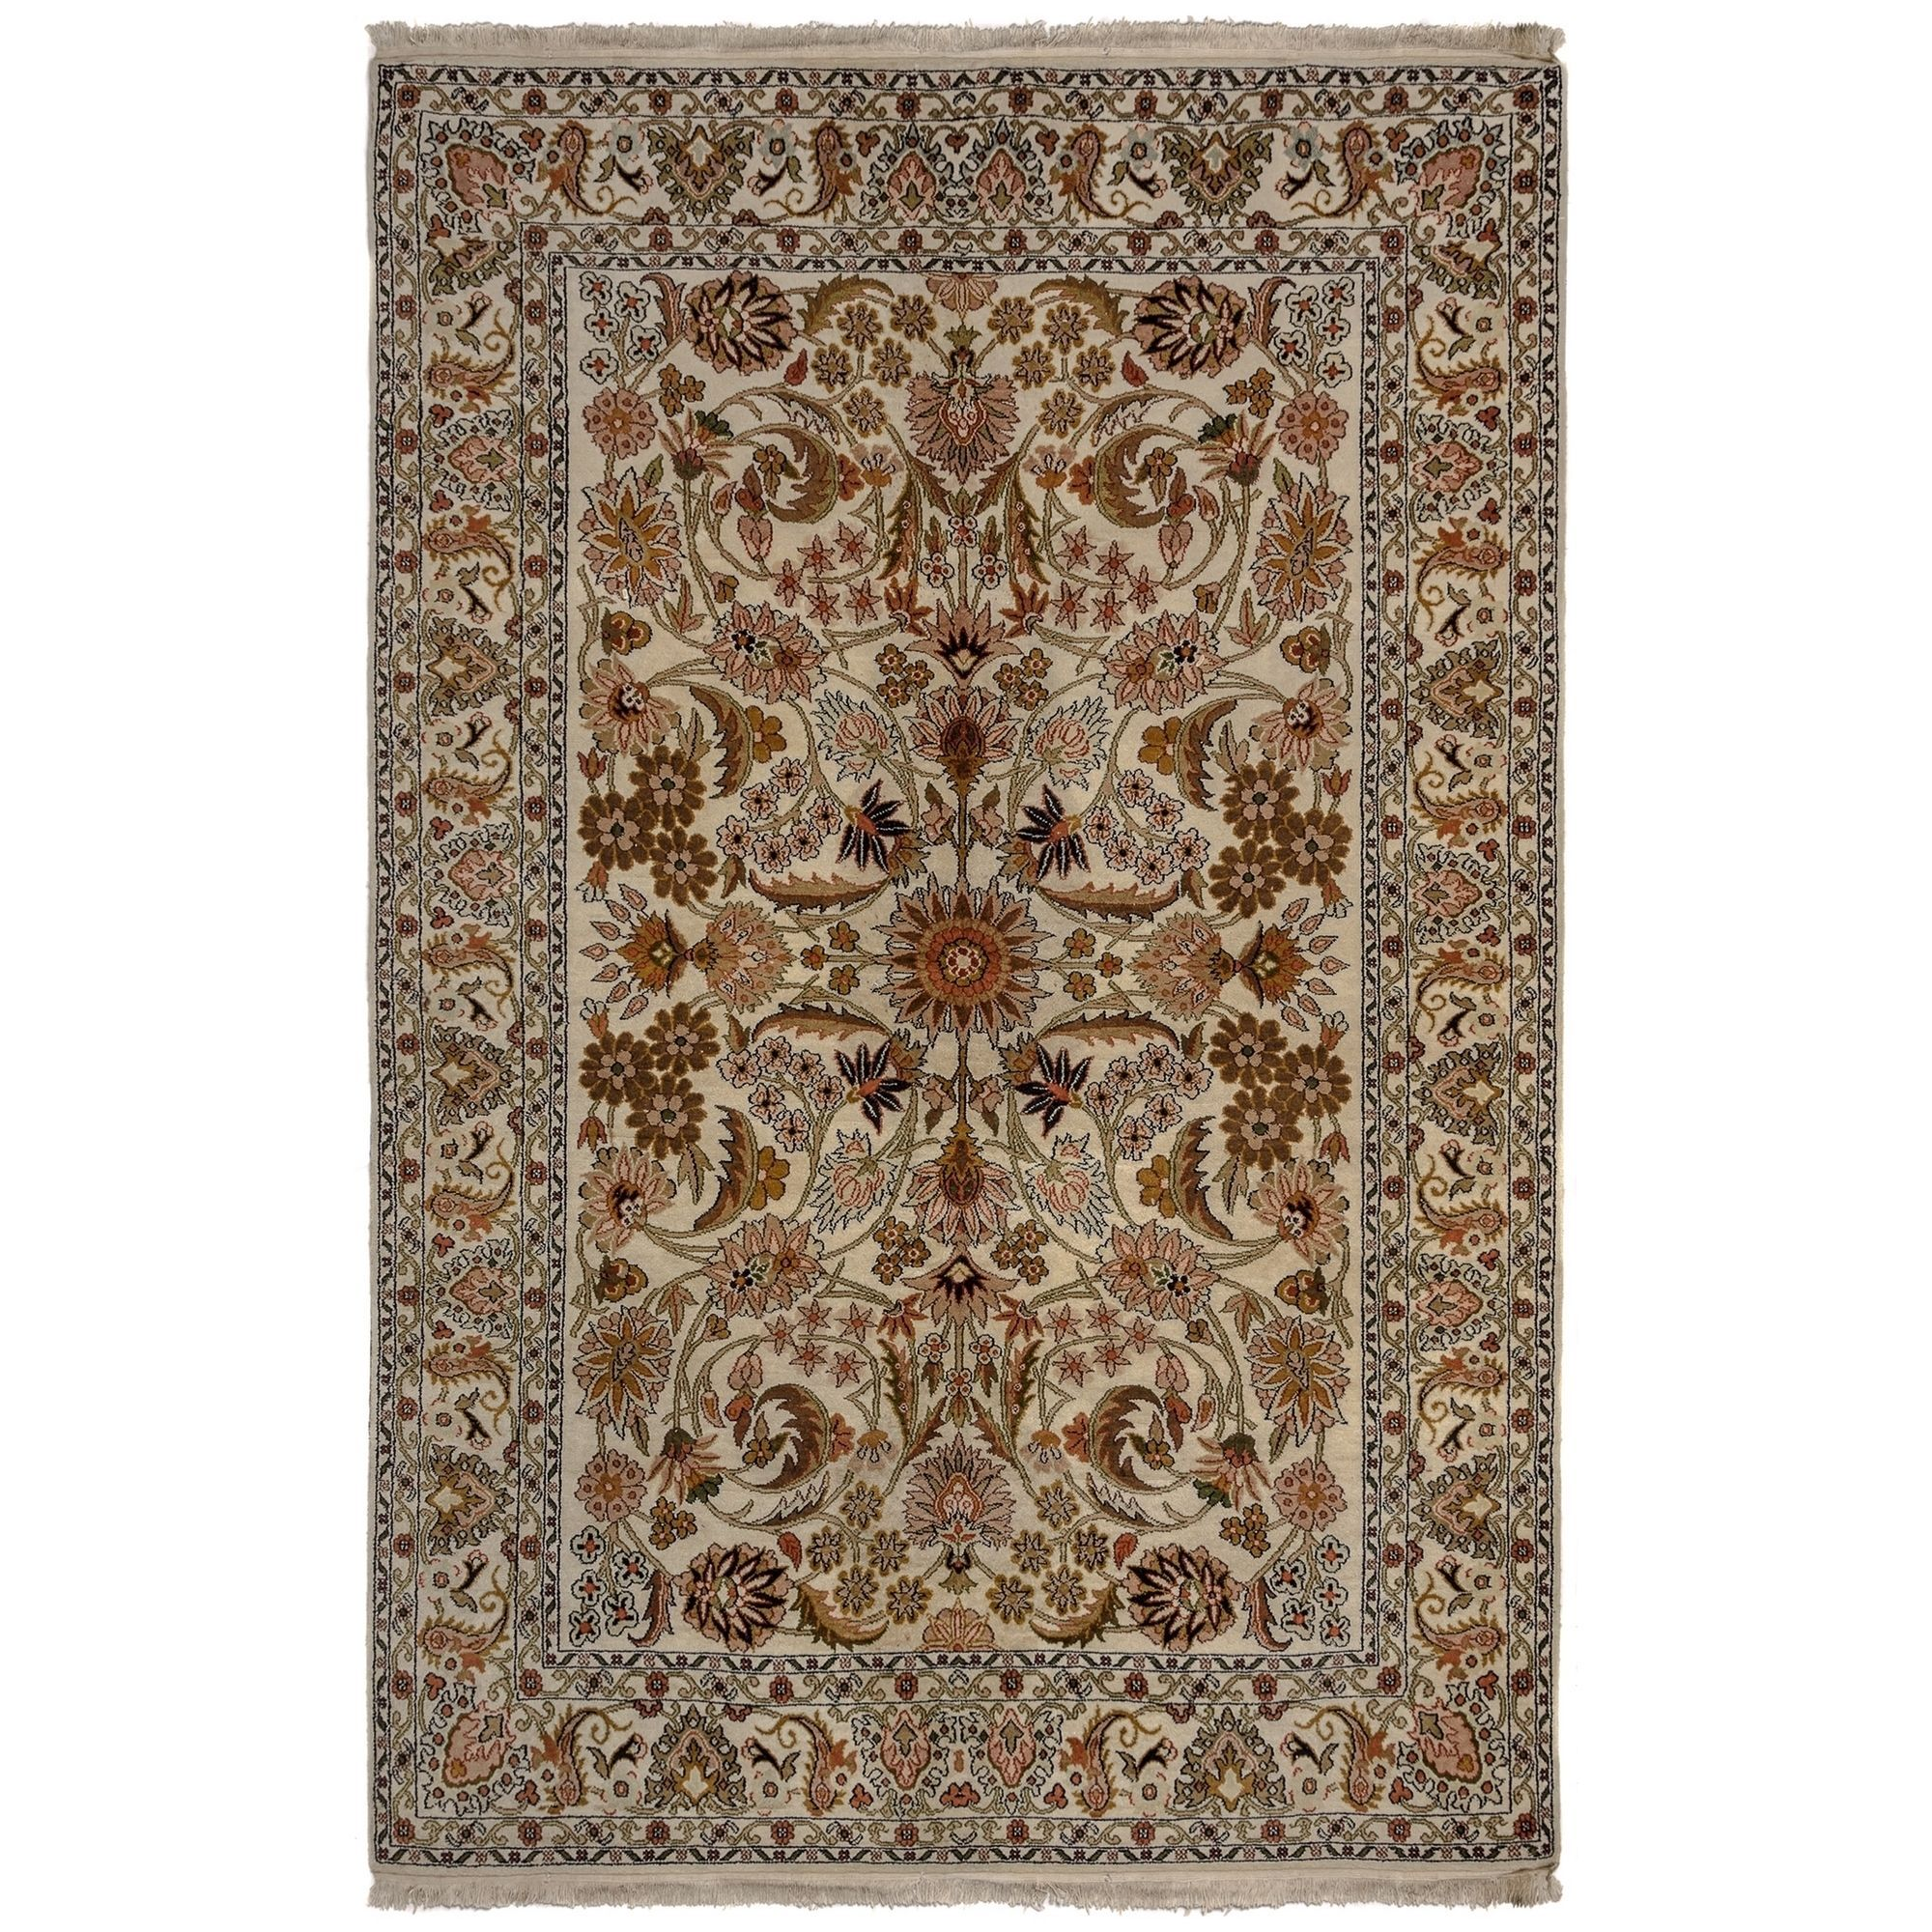 Safavieh One Of A Kind Collection Hand Knotted Egyptian Rug